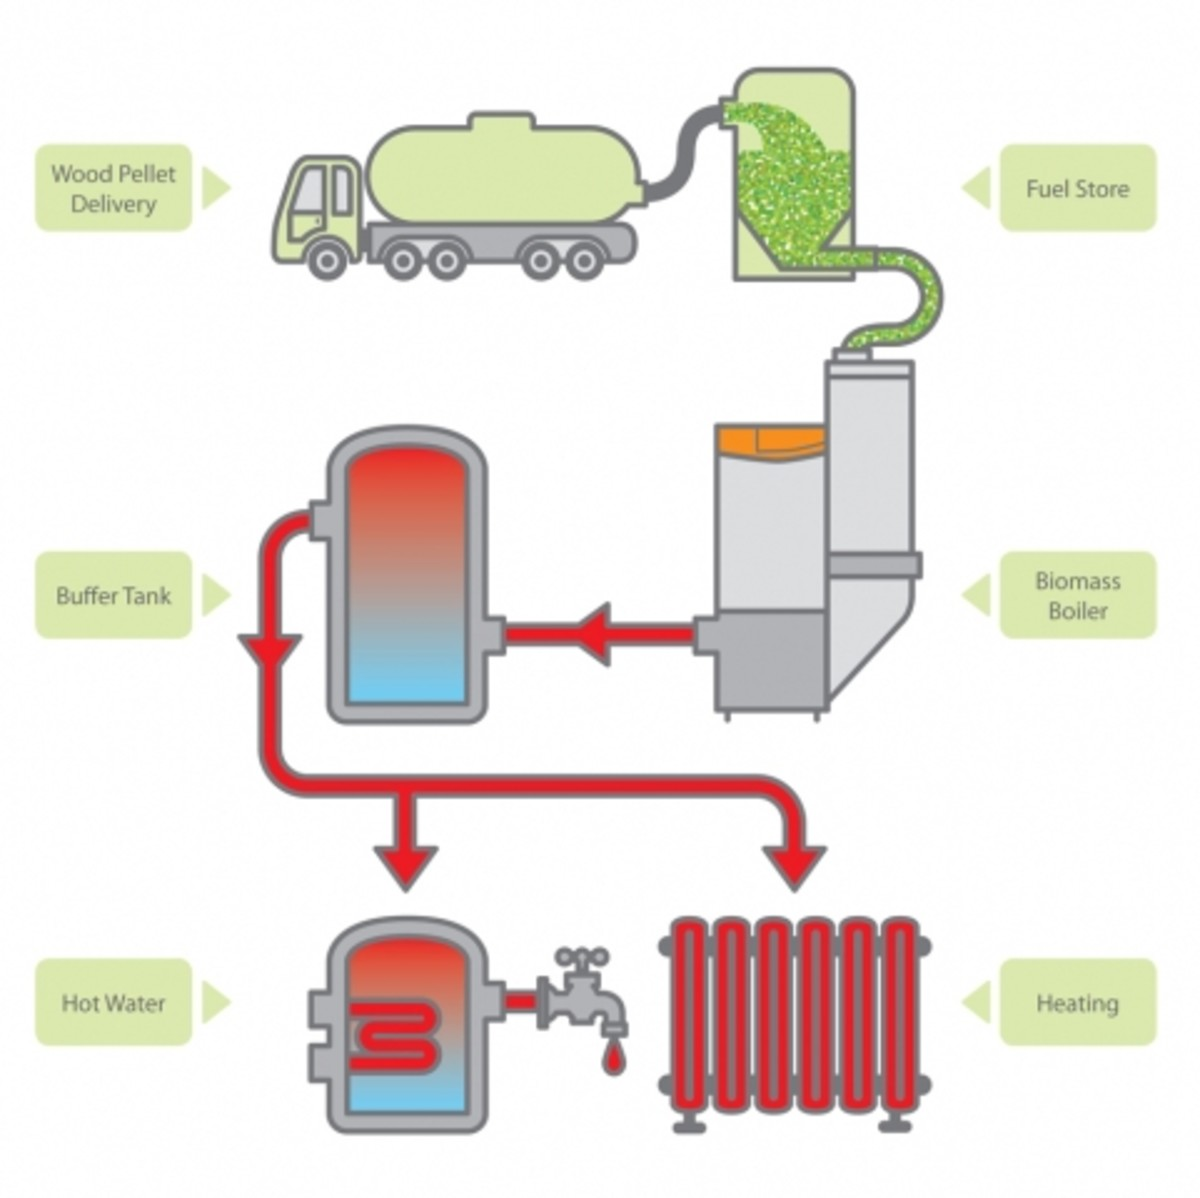 Wood pellet delivery to consumption and output flow chart diagram